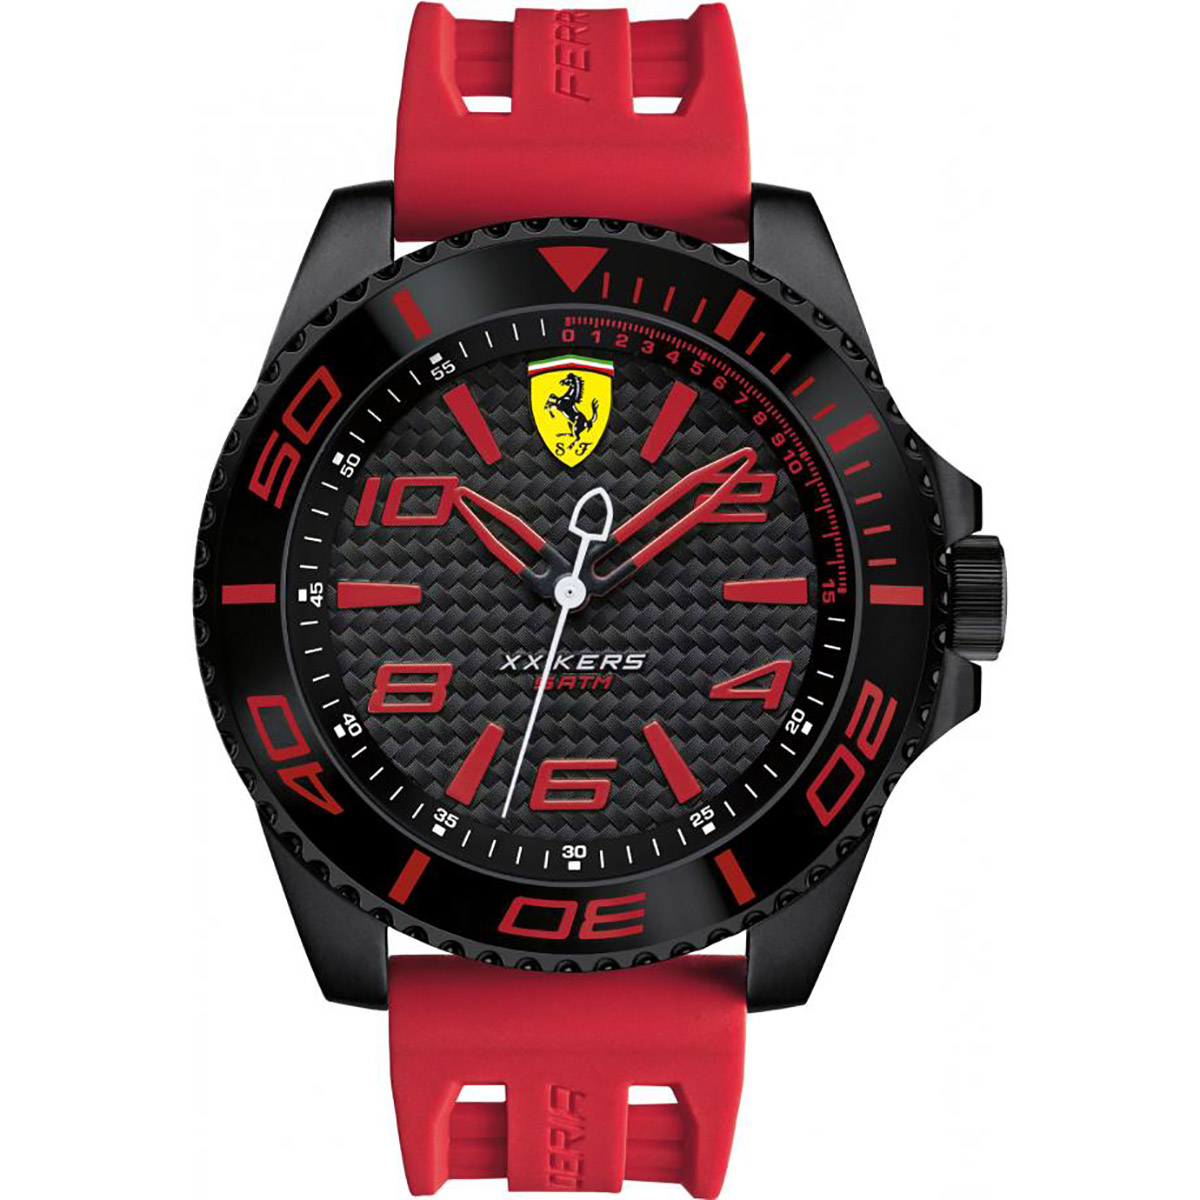 Ferrari Mens Watch Nwt Garansi 0830308 Intl Di Indonesia